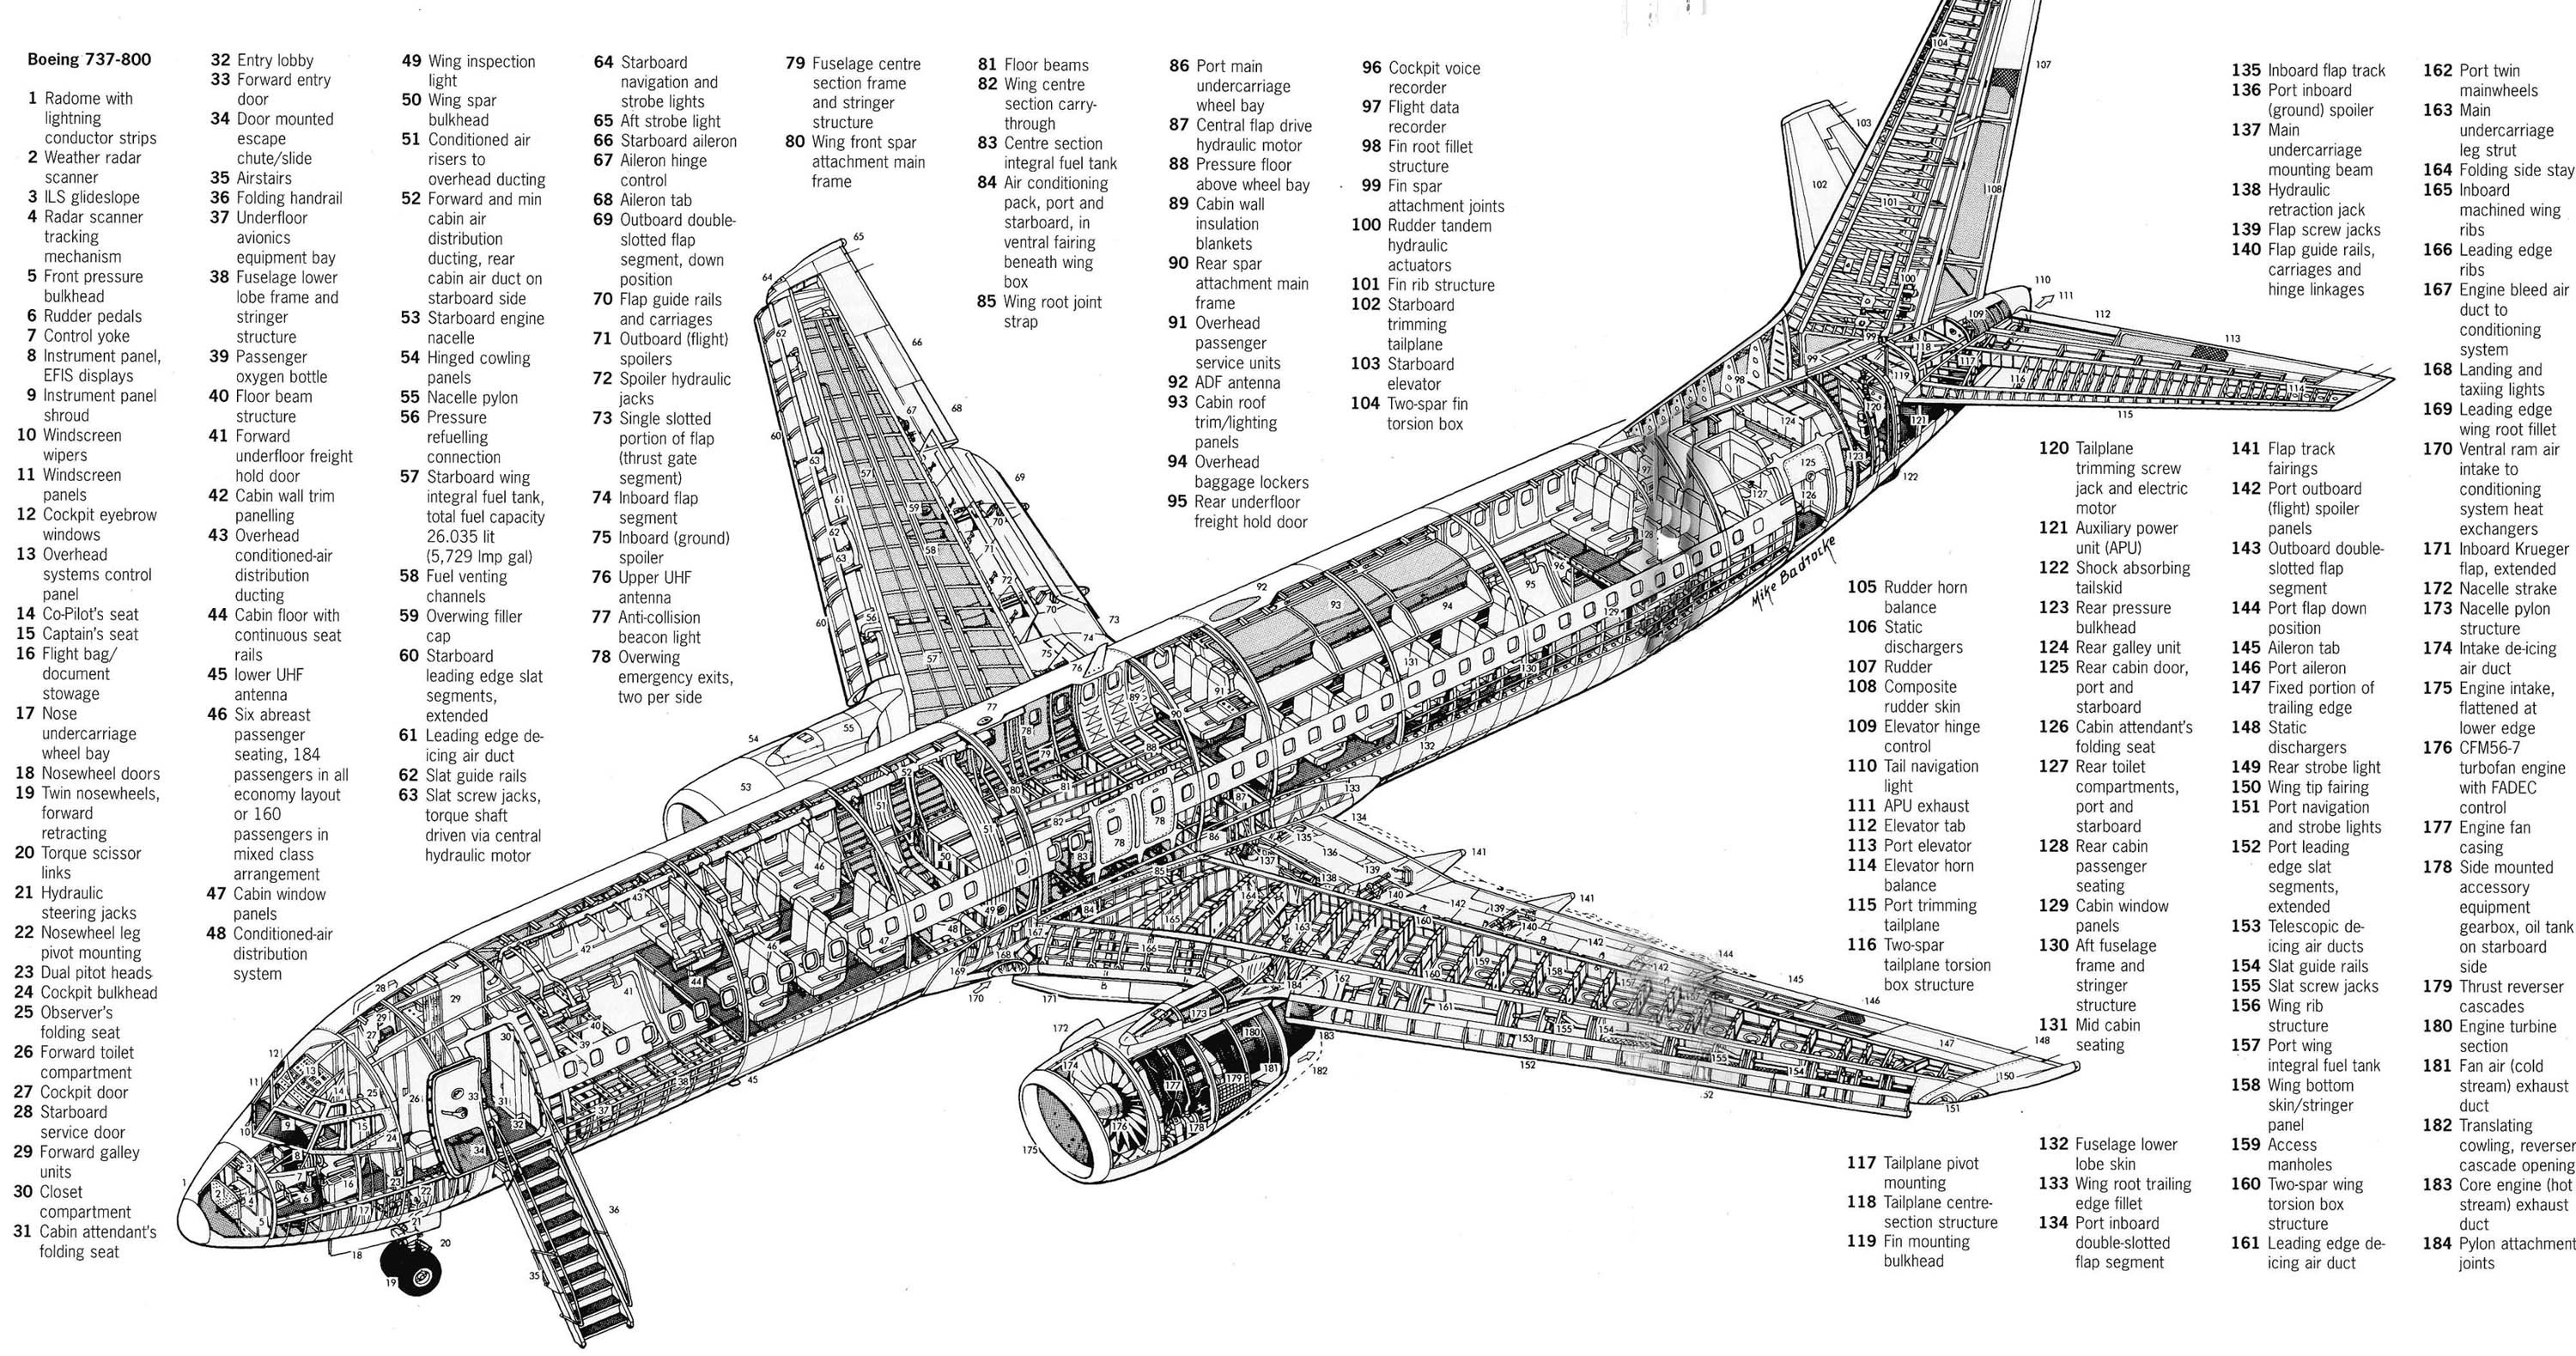 Diagram Wiring Diagram Of Boeing737 Full Version Hd Quality Of Boeing737 Diagramsyq Ecoldo It